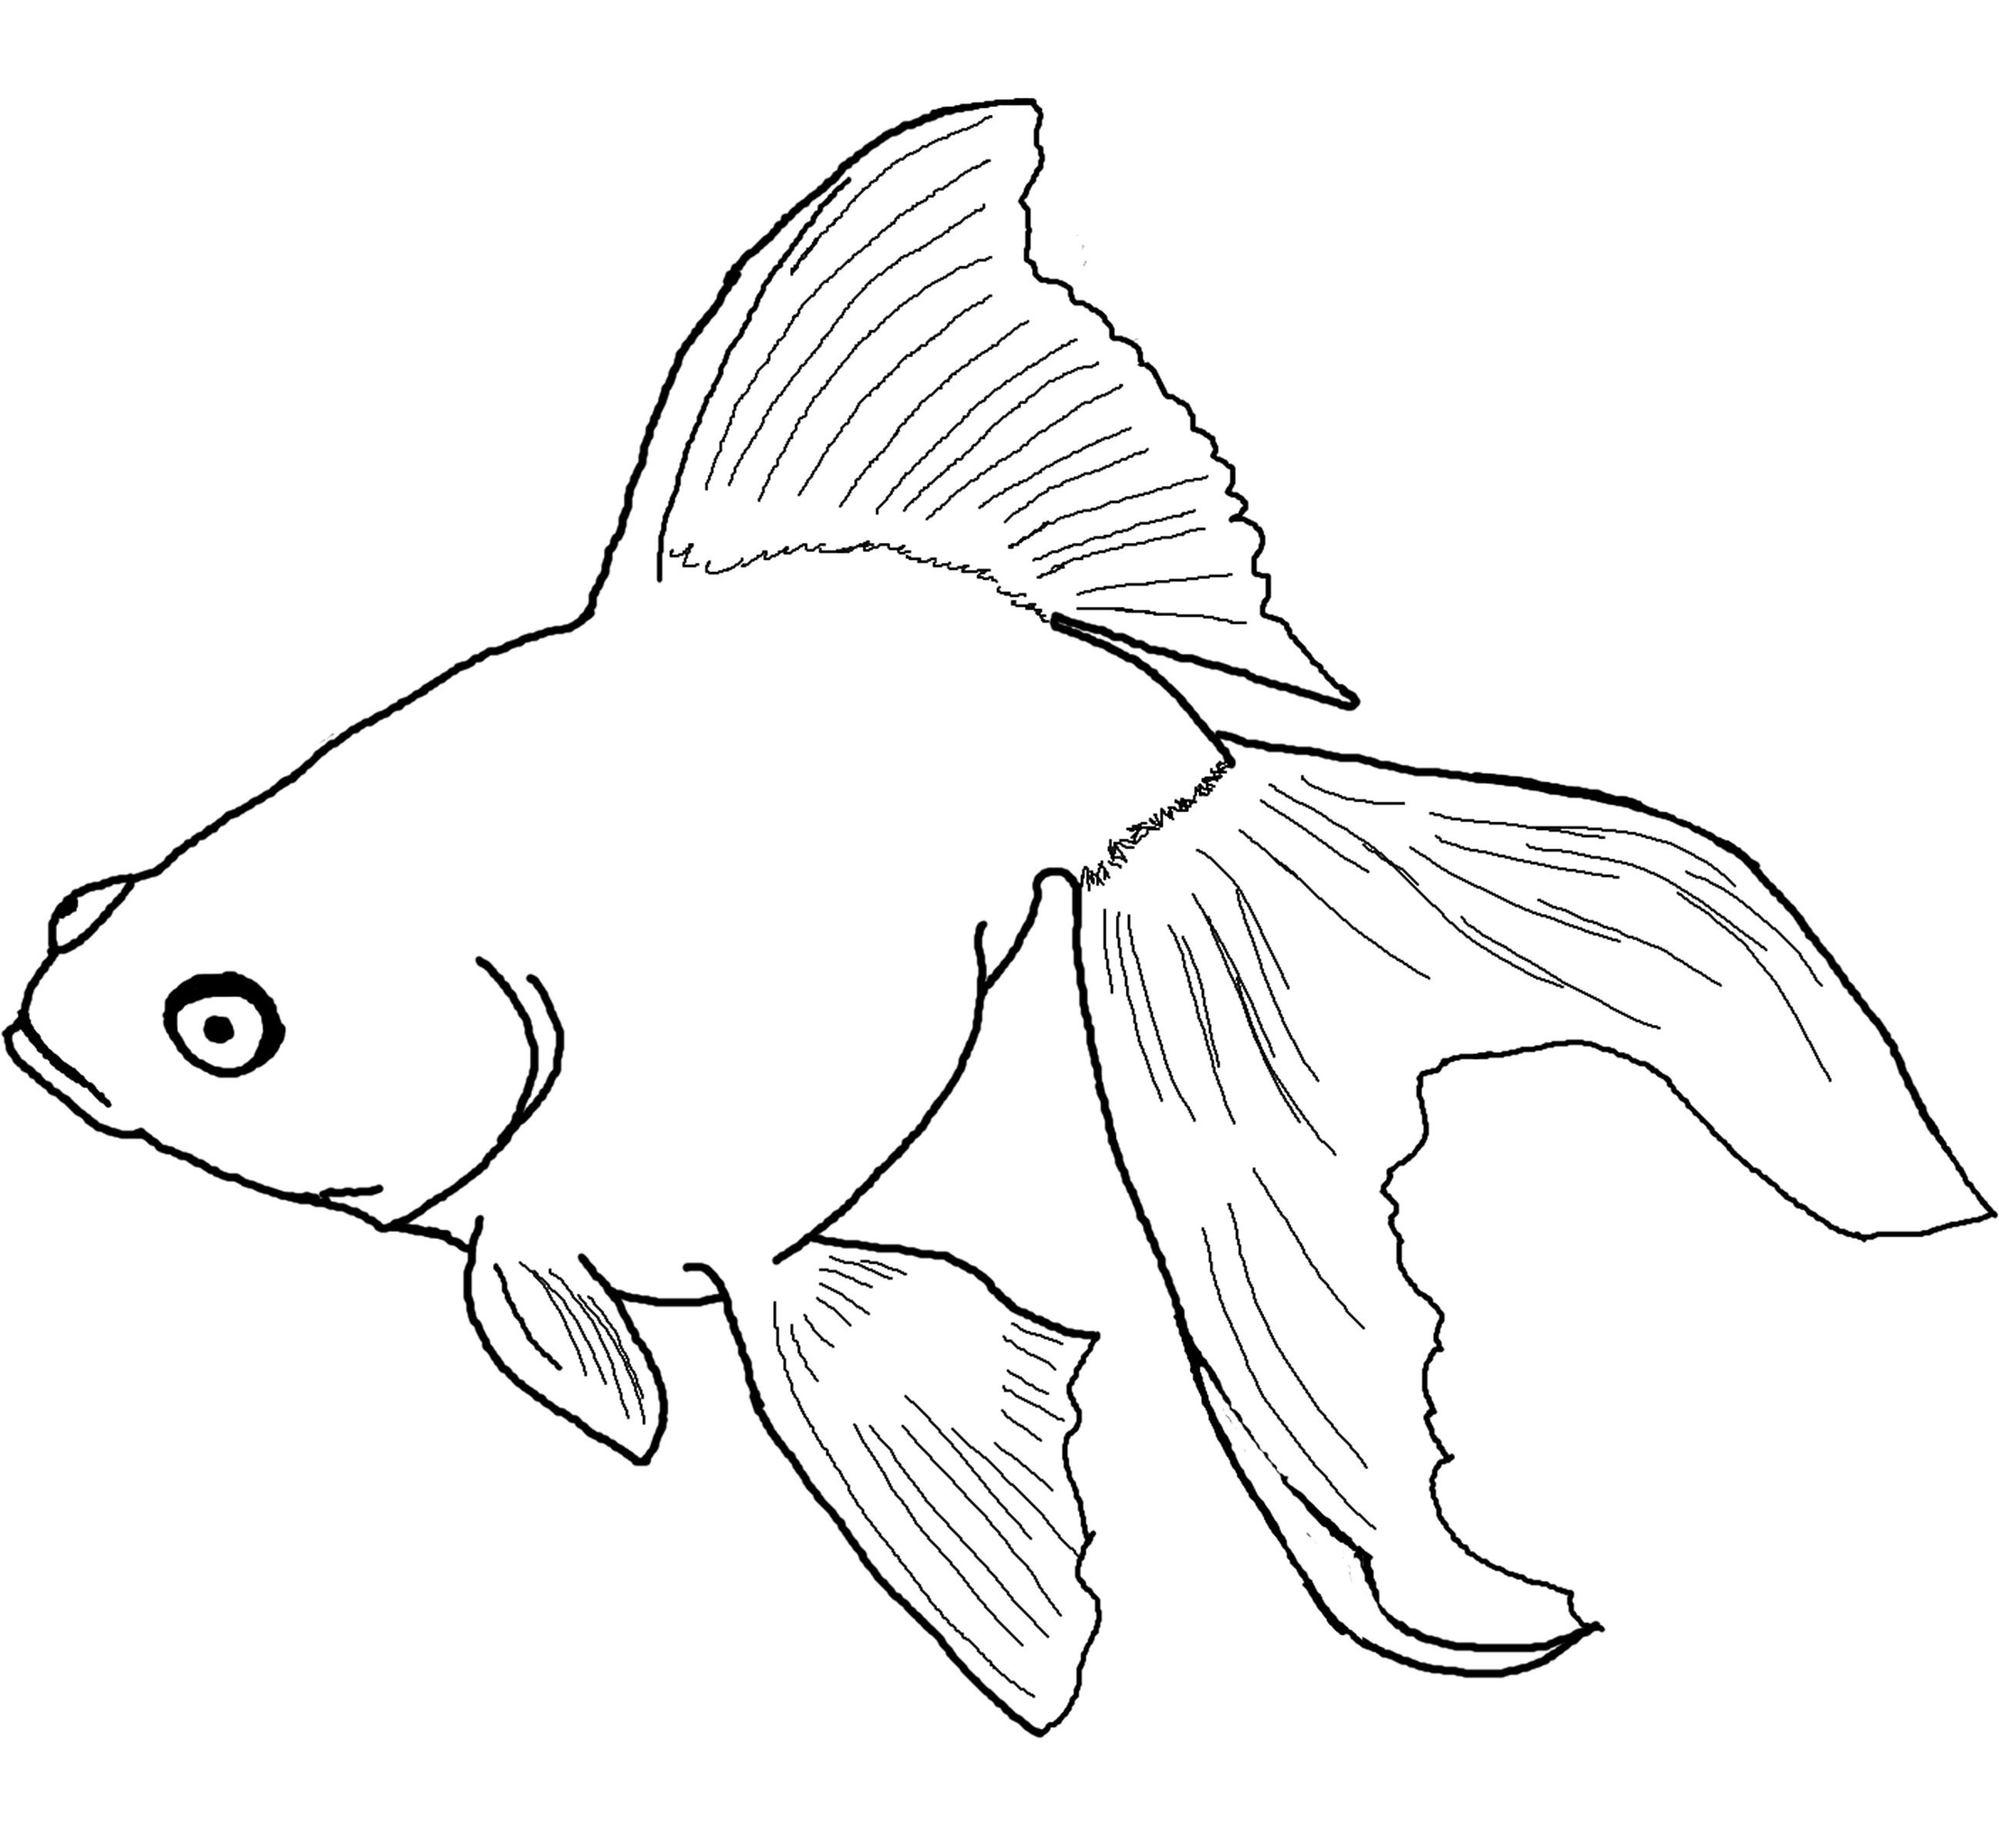 Colored Fish Drawing at GetDrawings.com | Free for personal use ...